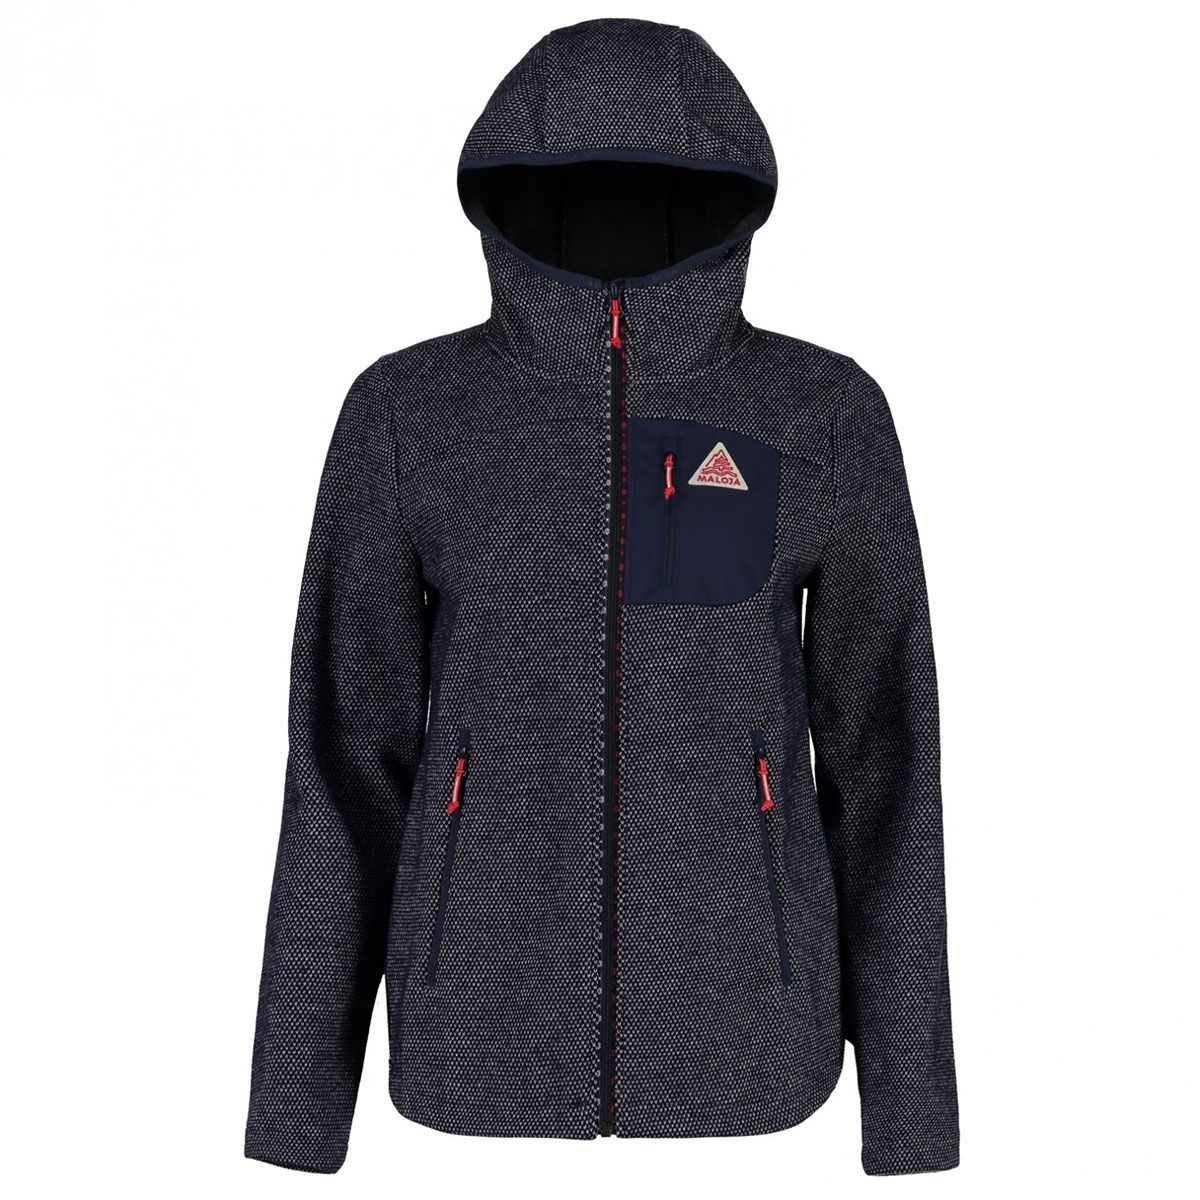 Maloja Damen TegiaM. Hooded Wool Jacke (Größe M, Blau) | Fleecejacken > Damen